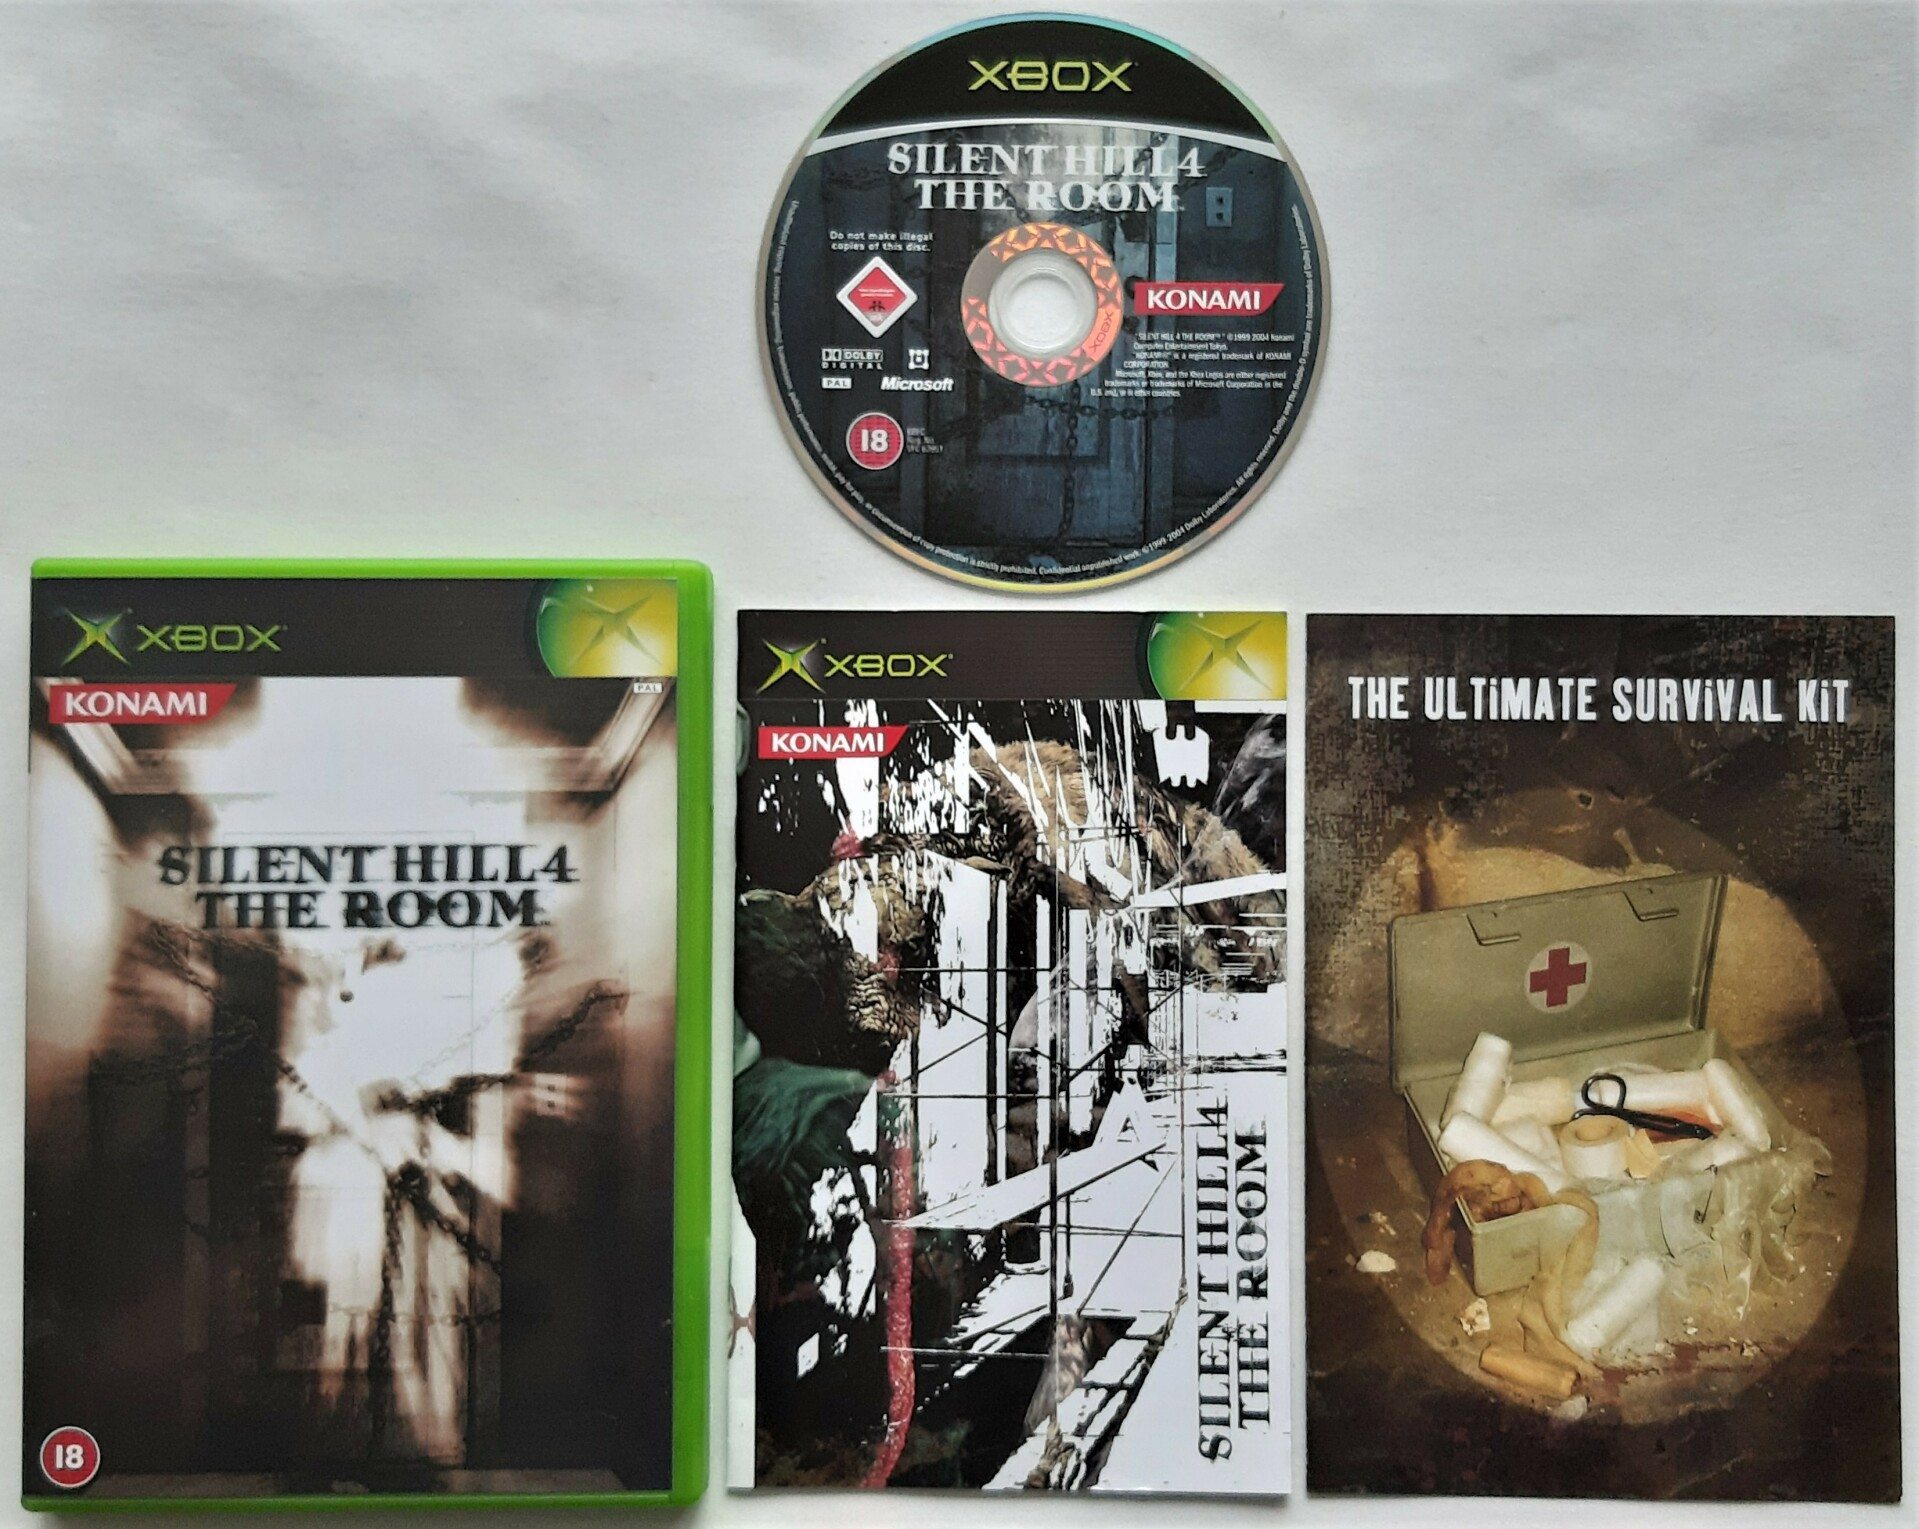 Xbox Silent Hill 4 The Room Pal Vinjat Video Games